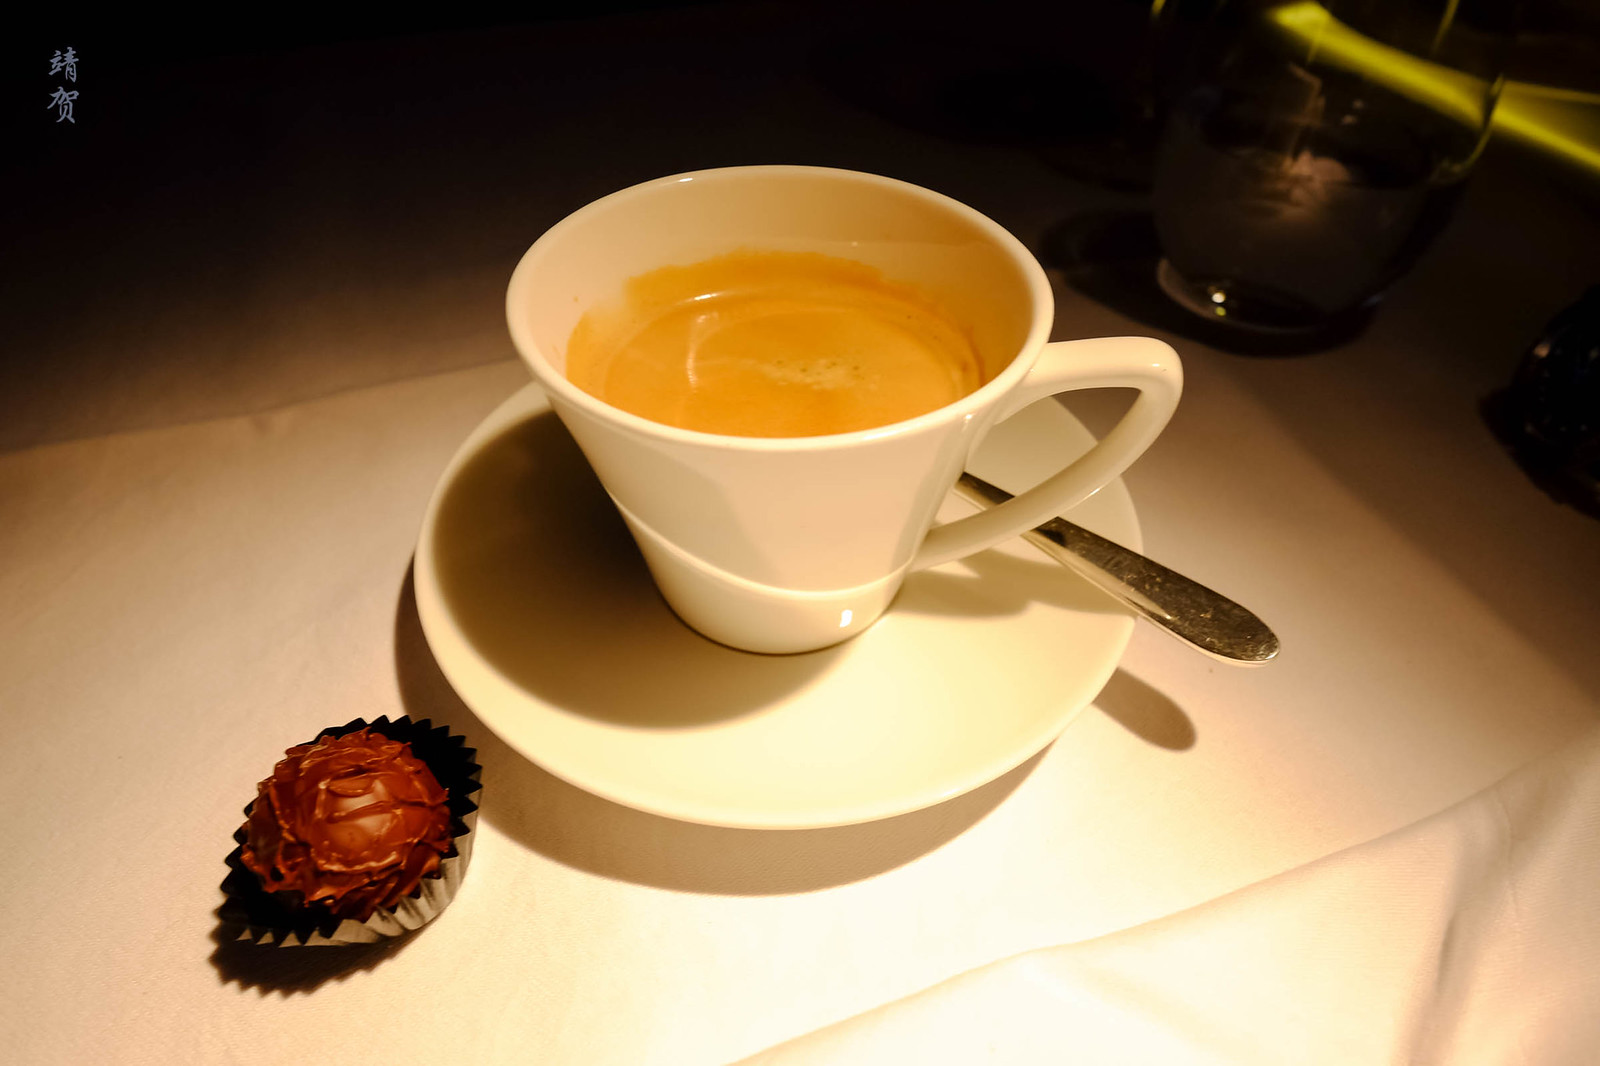 Nespresso and pralines